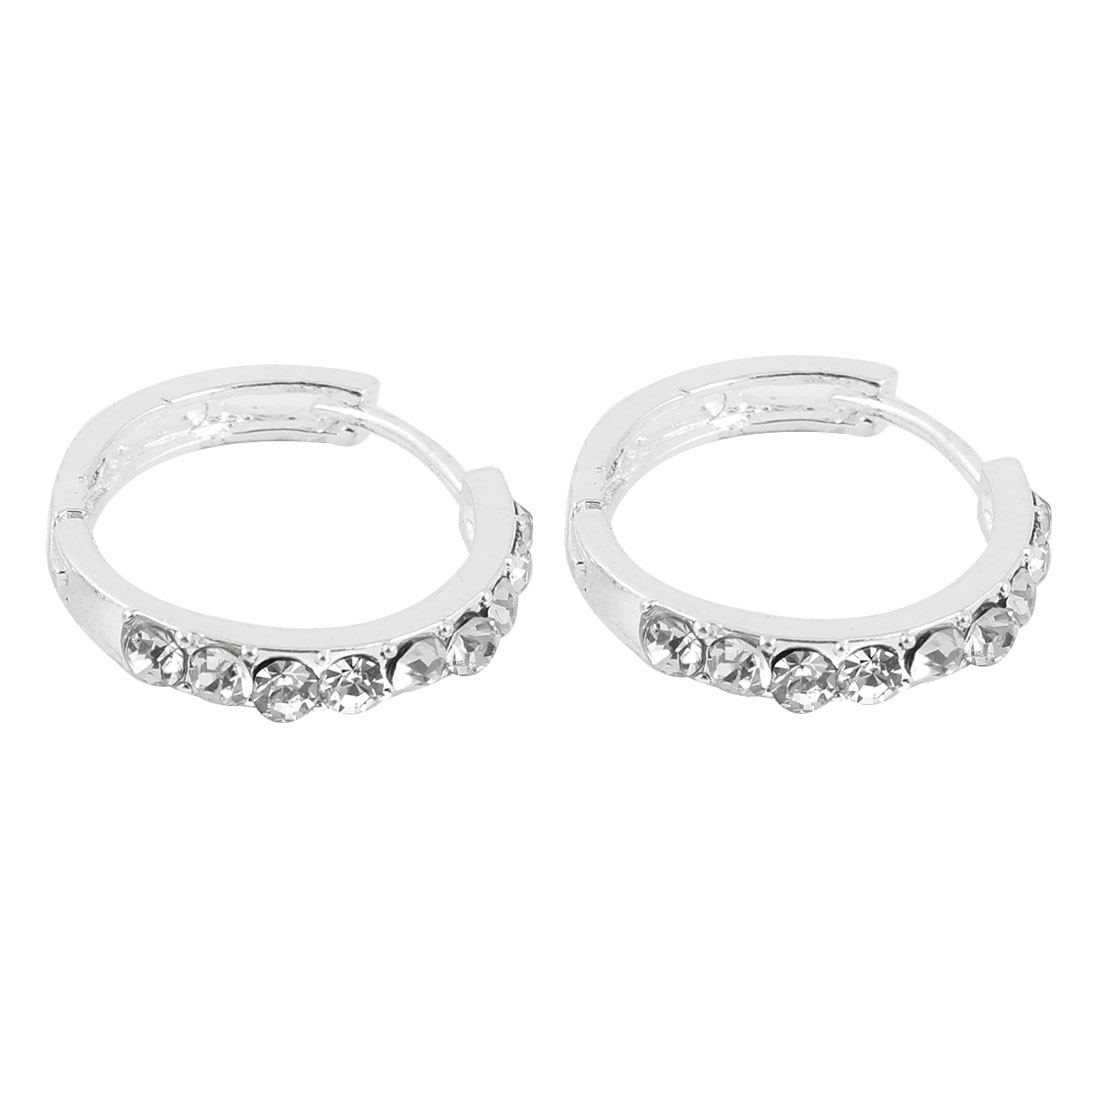 Ladies Pair Clear Glittery Rhinestone Accent Pierced Hoop Earrings